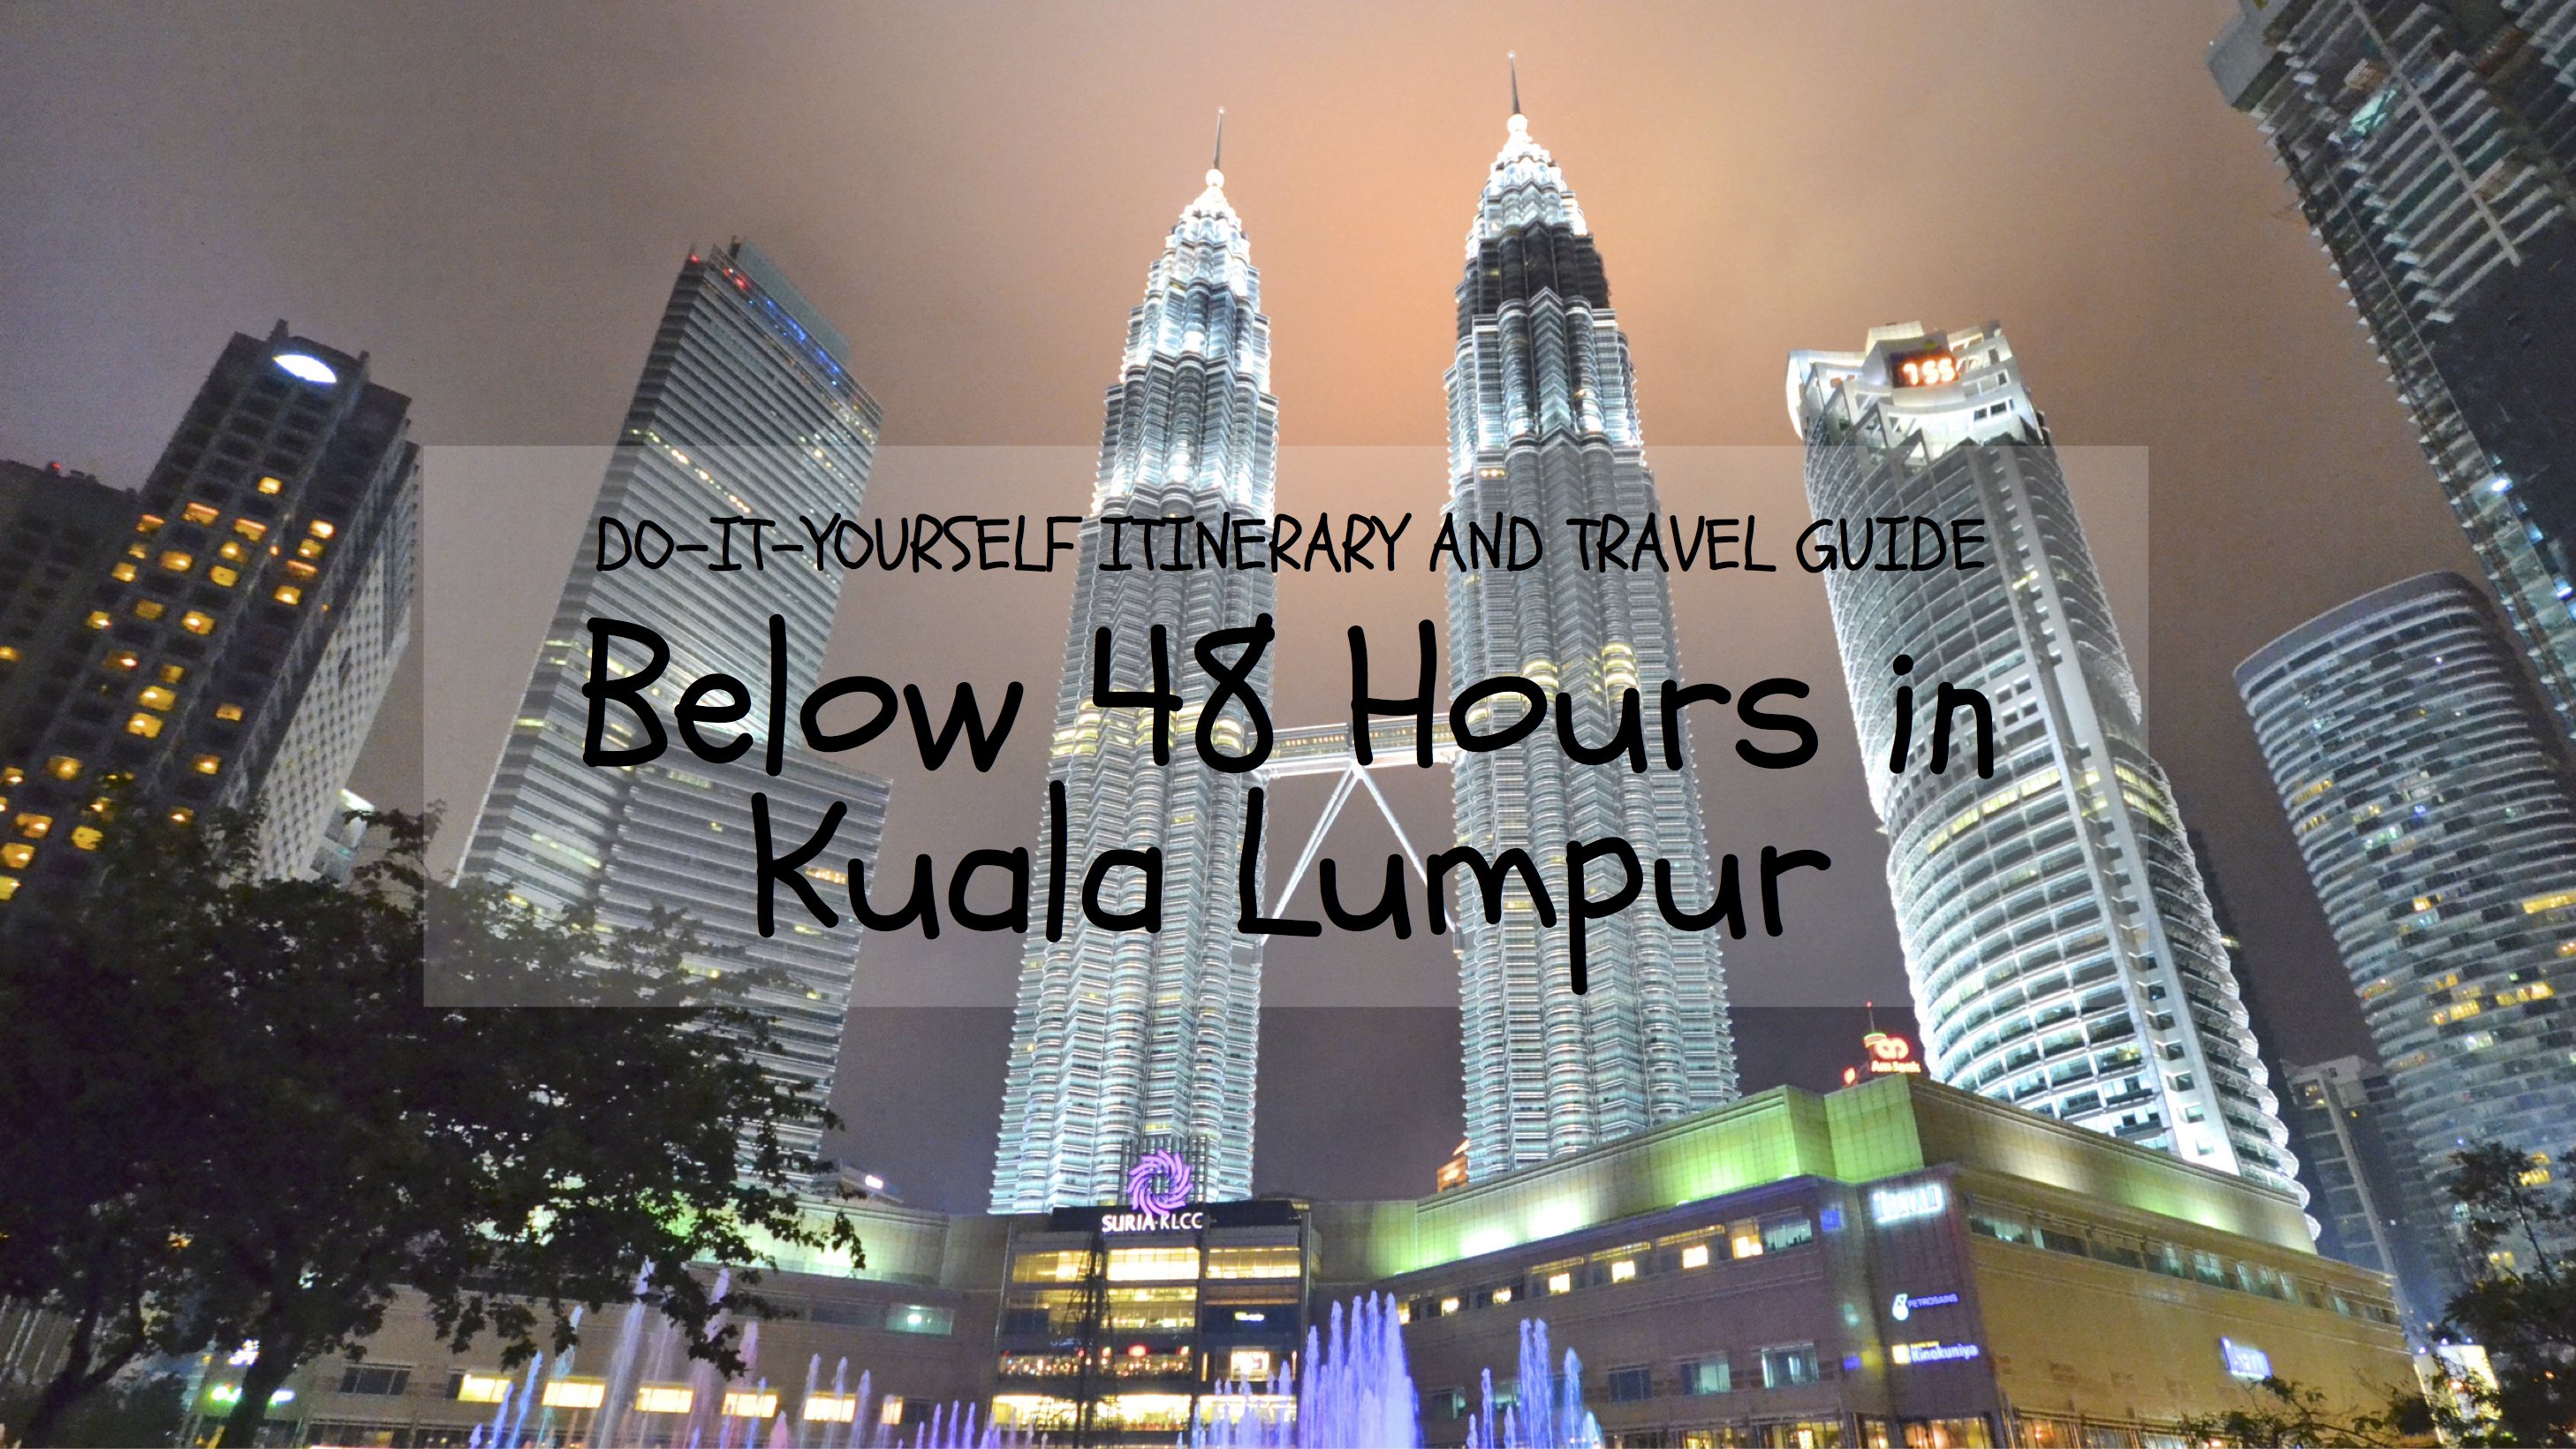 DIY Itinerary and Travel Guide: Below 48 Hours in Kuala